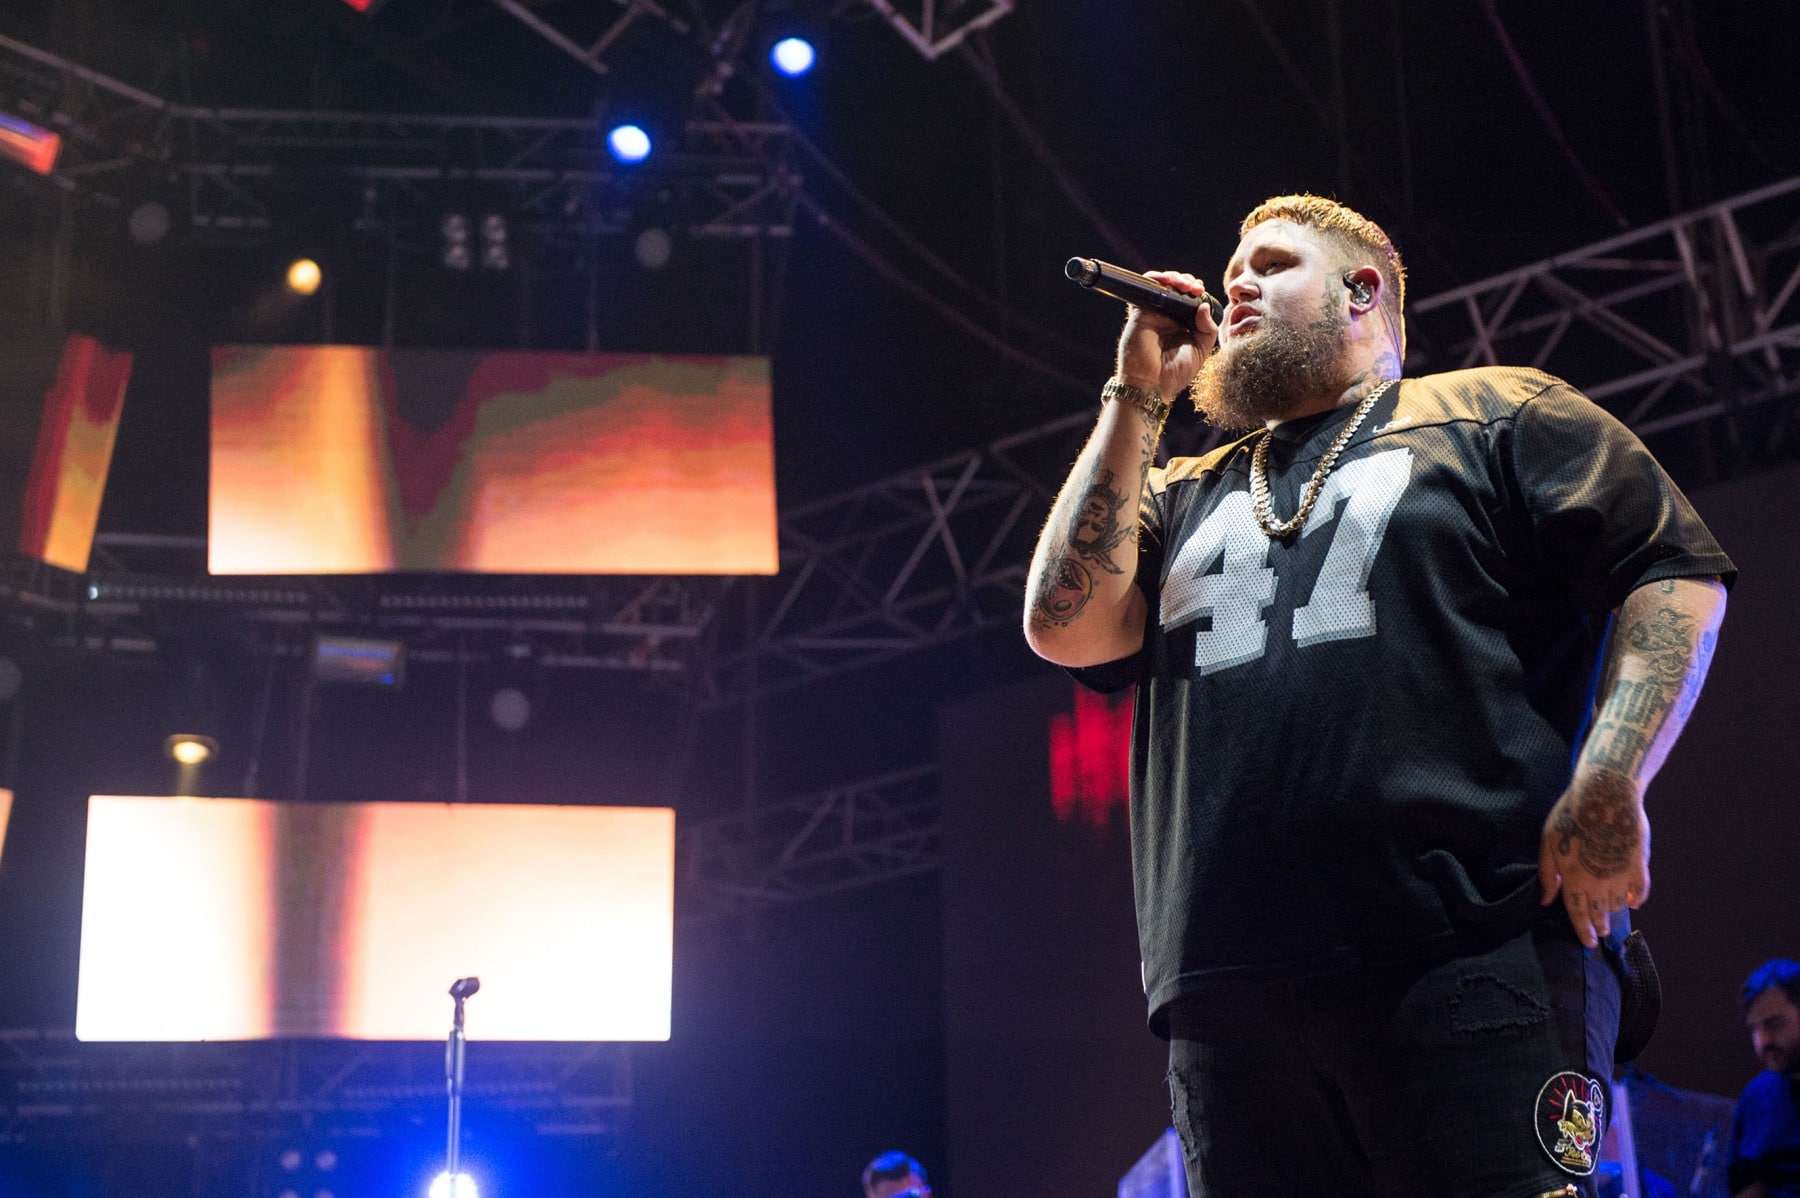 rag-n-bone-man-at-mtv-presents-gibraltar-calling-2018-day-2-by-ollie-millington-14_43072429880_o